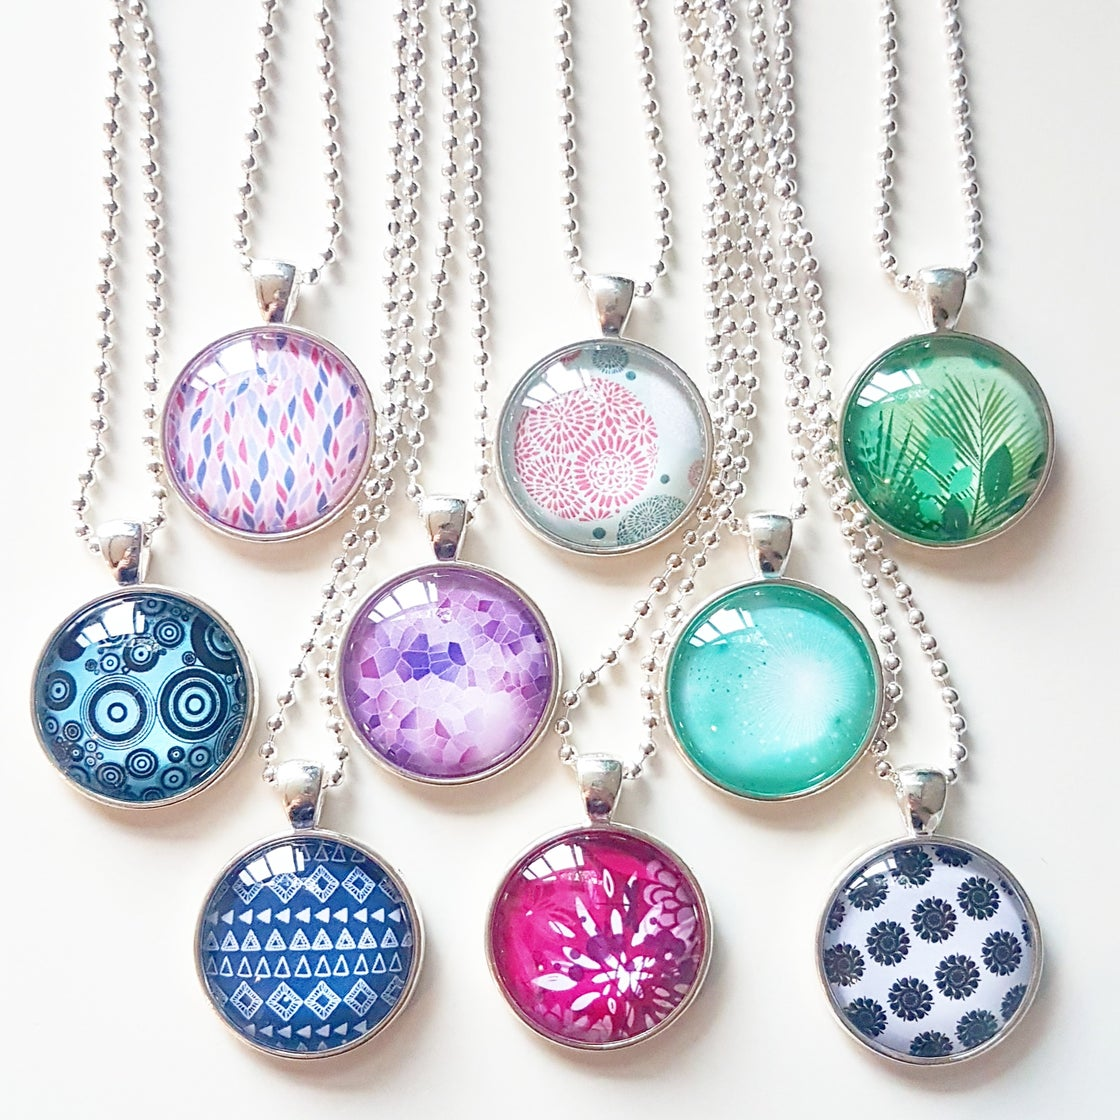 Image of Small Pendants - NEW DESIGNS!